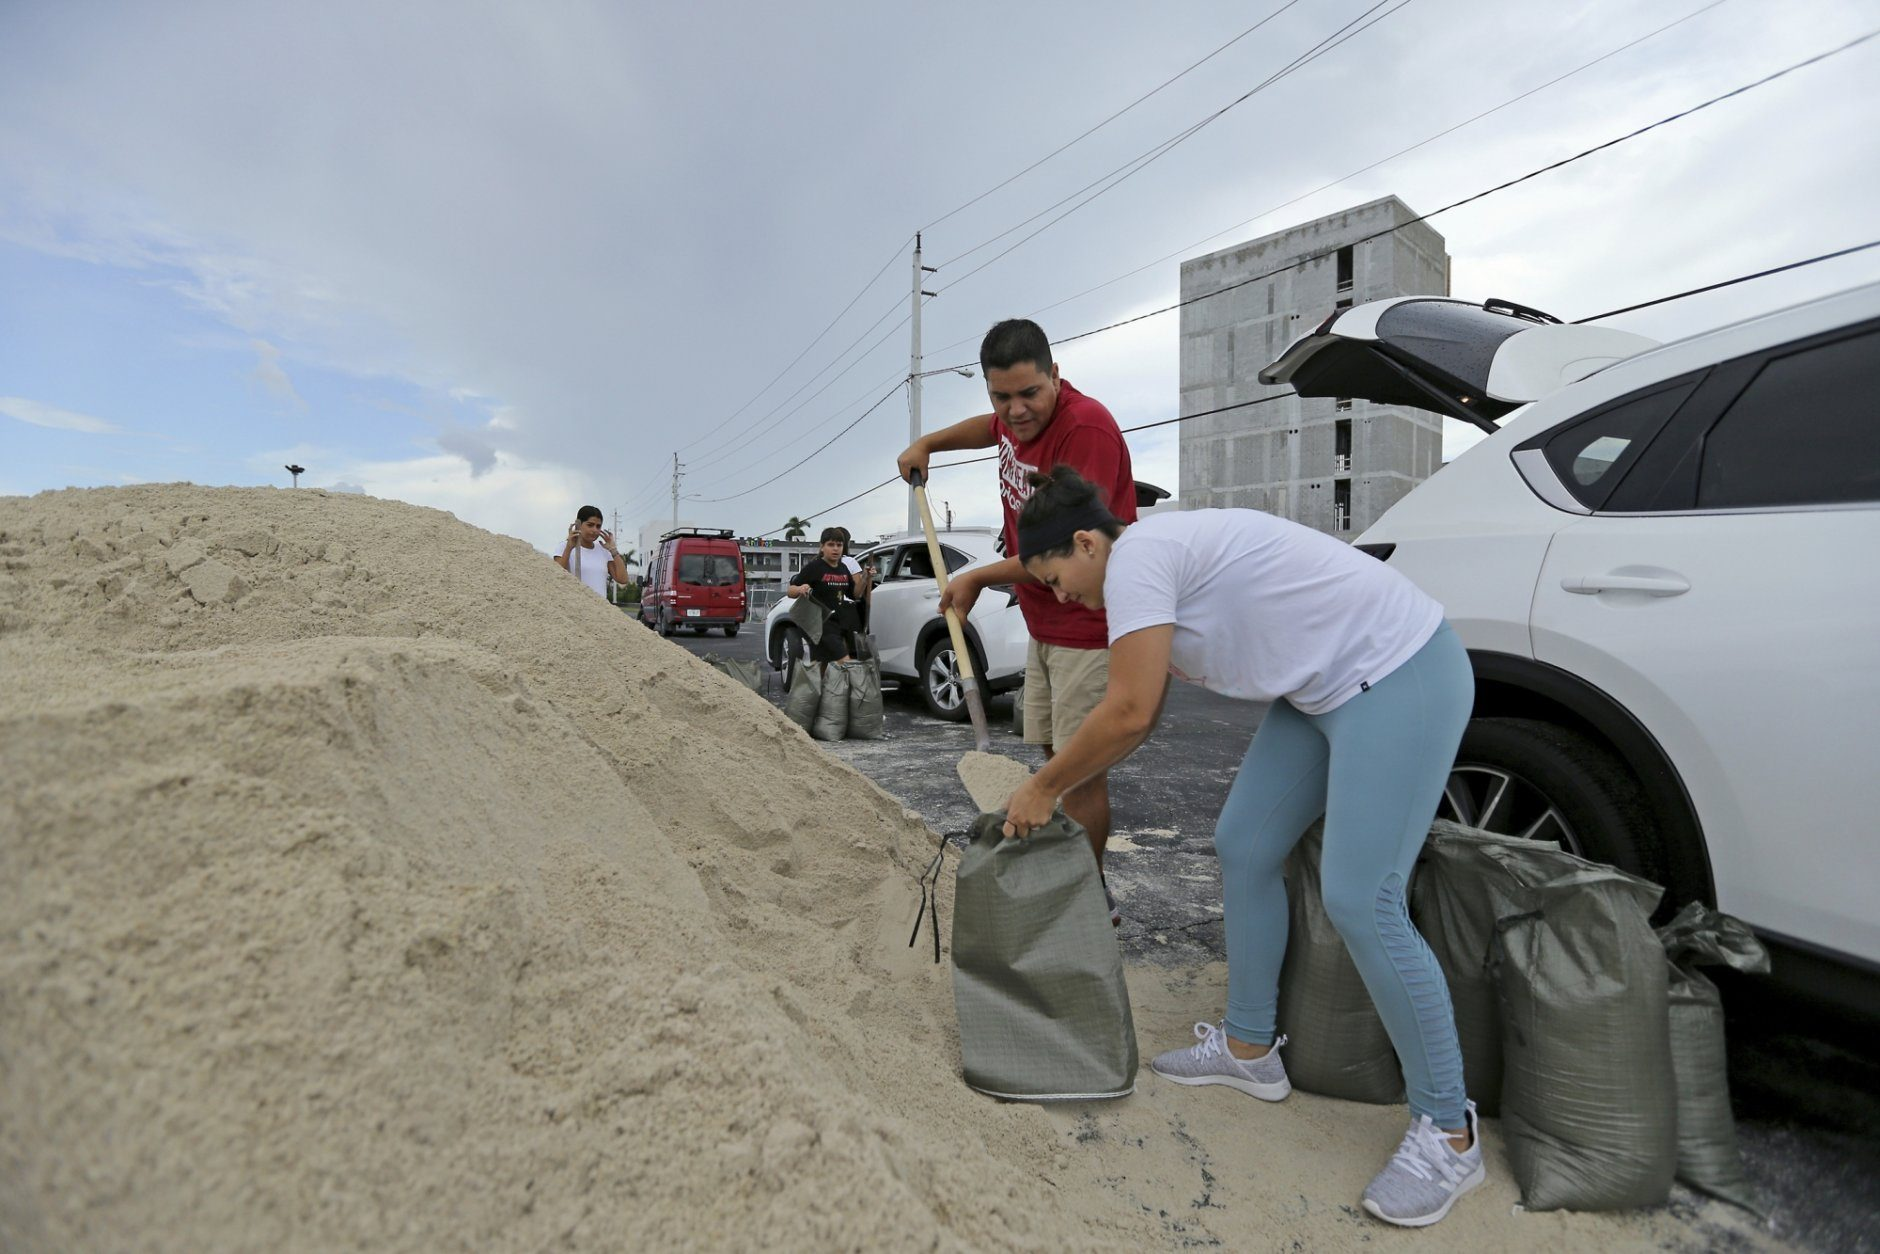 Farah y Max Cicardini fill sandbags at the parking of the Big Easy Casino, Friday, Aug. 30, 2019 in Hallandale Beach, Fla.  Hurricane Dorian was muscling a chaotic path toward Florida, with officials and residents bracing for the possibility it would unleash its full fury early next week but clinging to the glimmer of hope that the strengthening storm could simply skirt the coastline. (David Santiago/Miami Herald via AP)